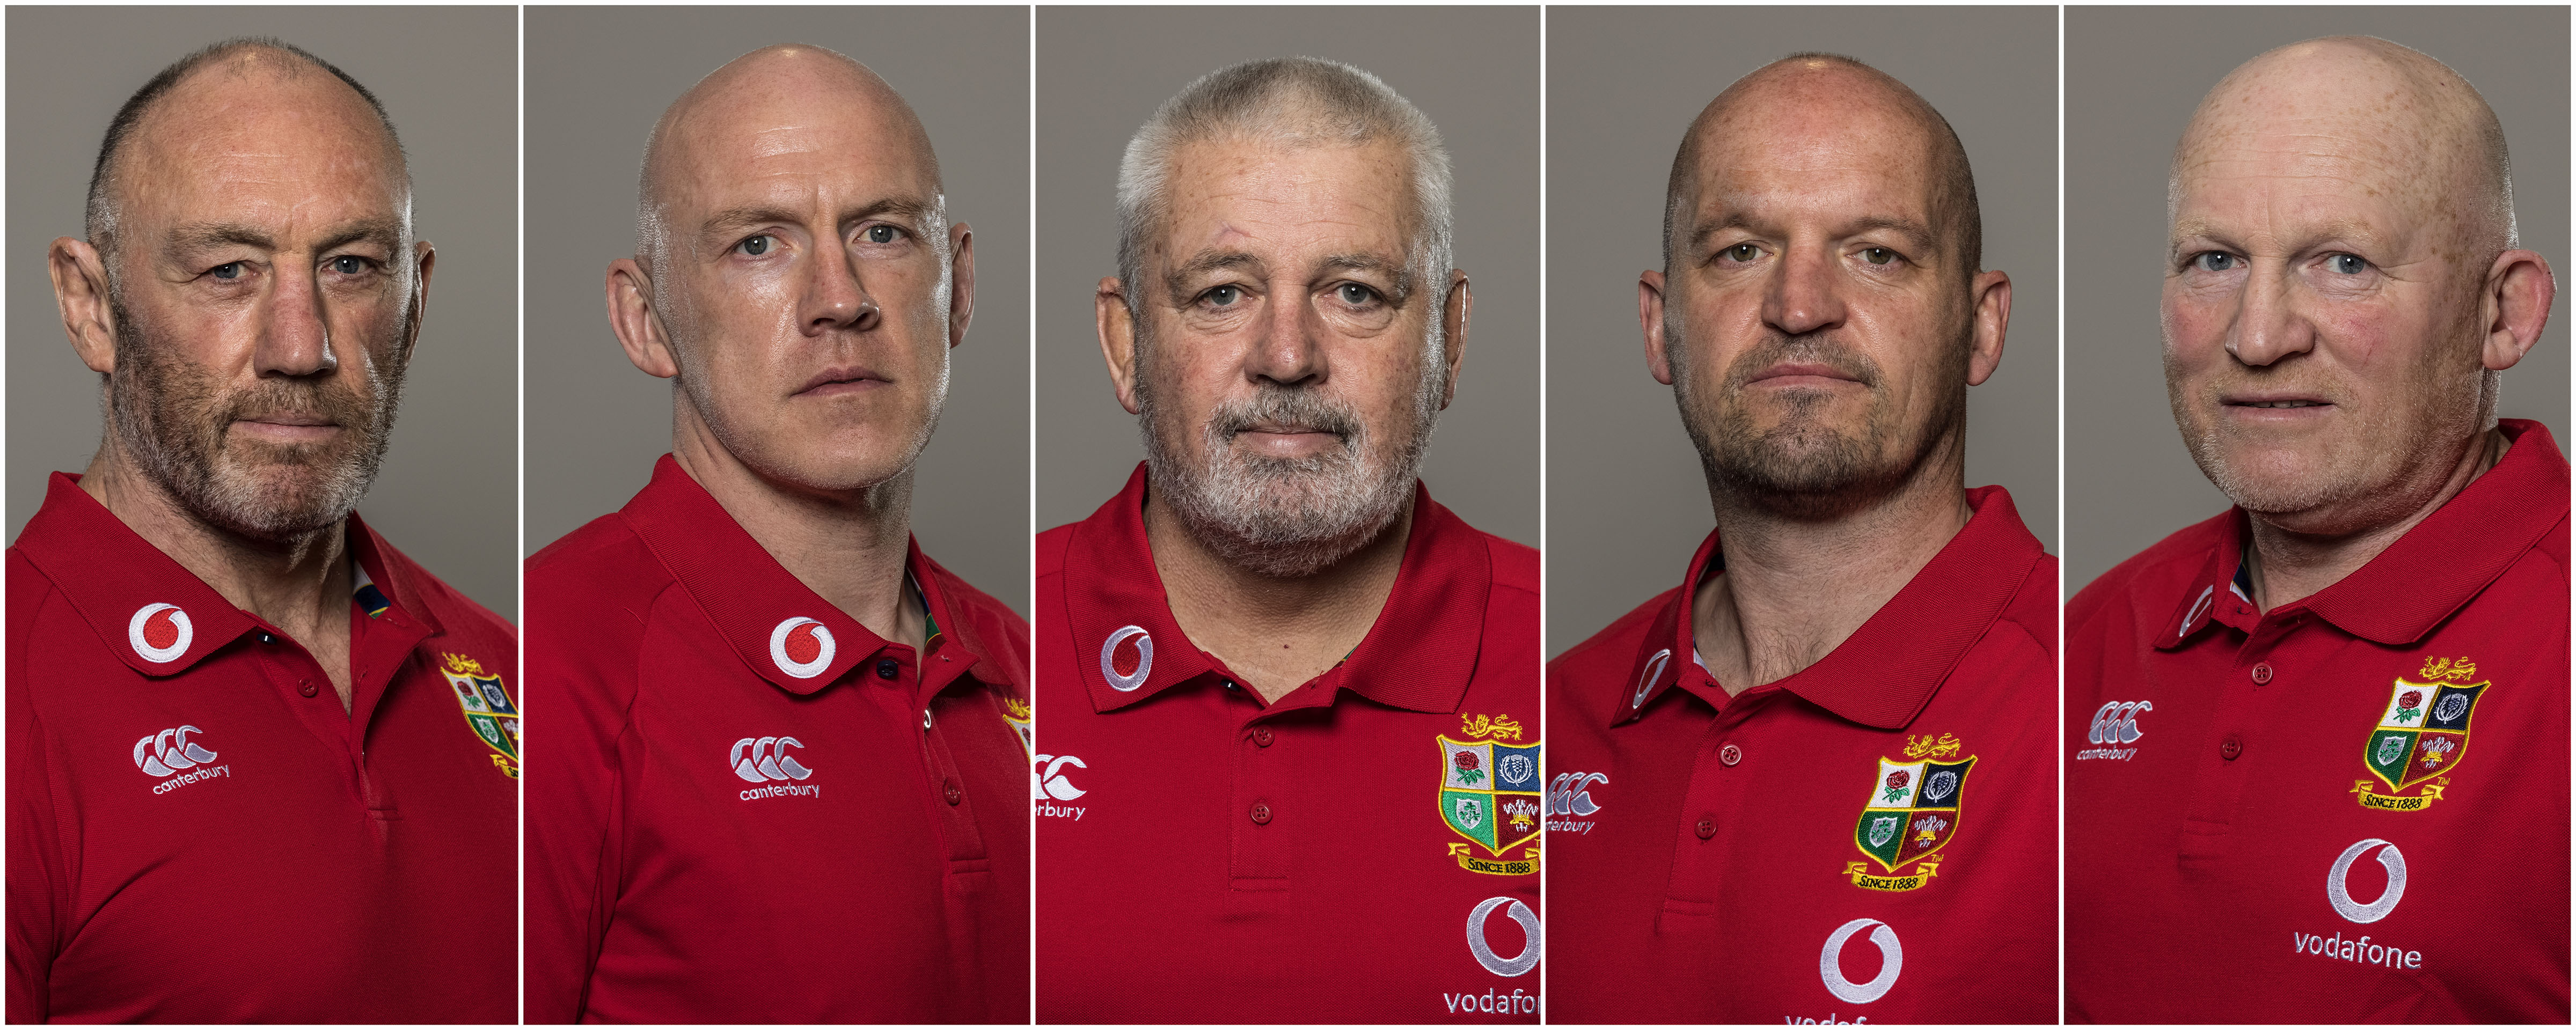 Lions coaching team (from left to right): Robin McBryde, Steve Tandy, Warren Gatland, Gregor Townsend